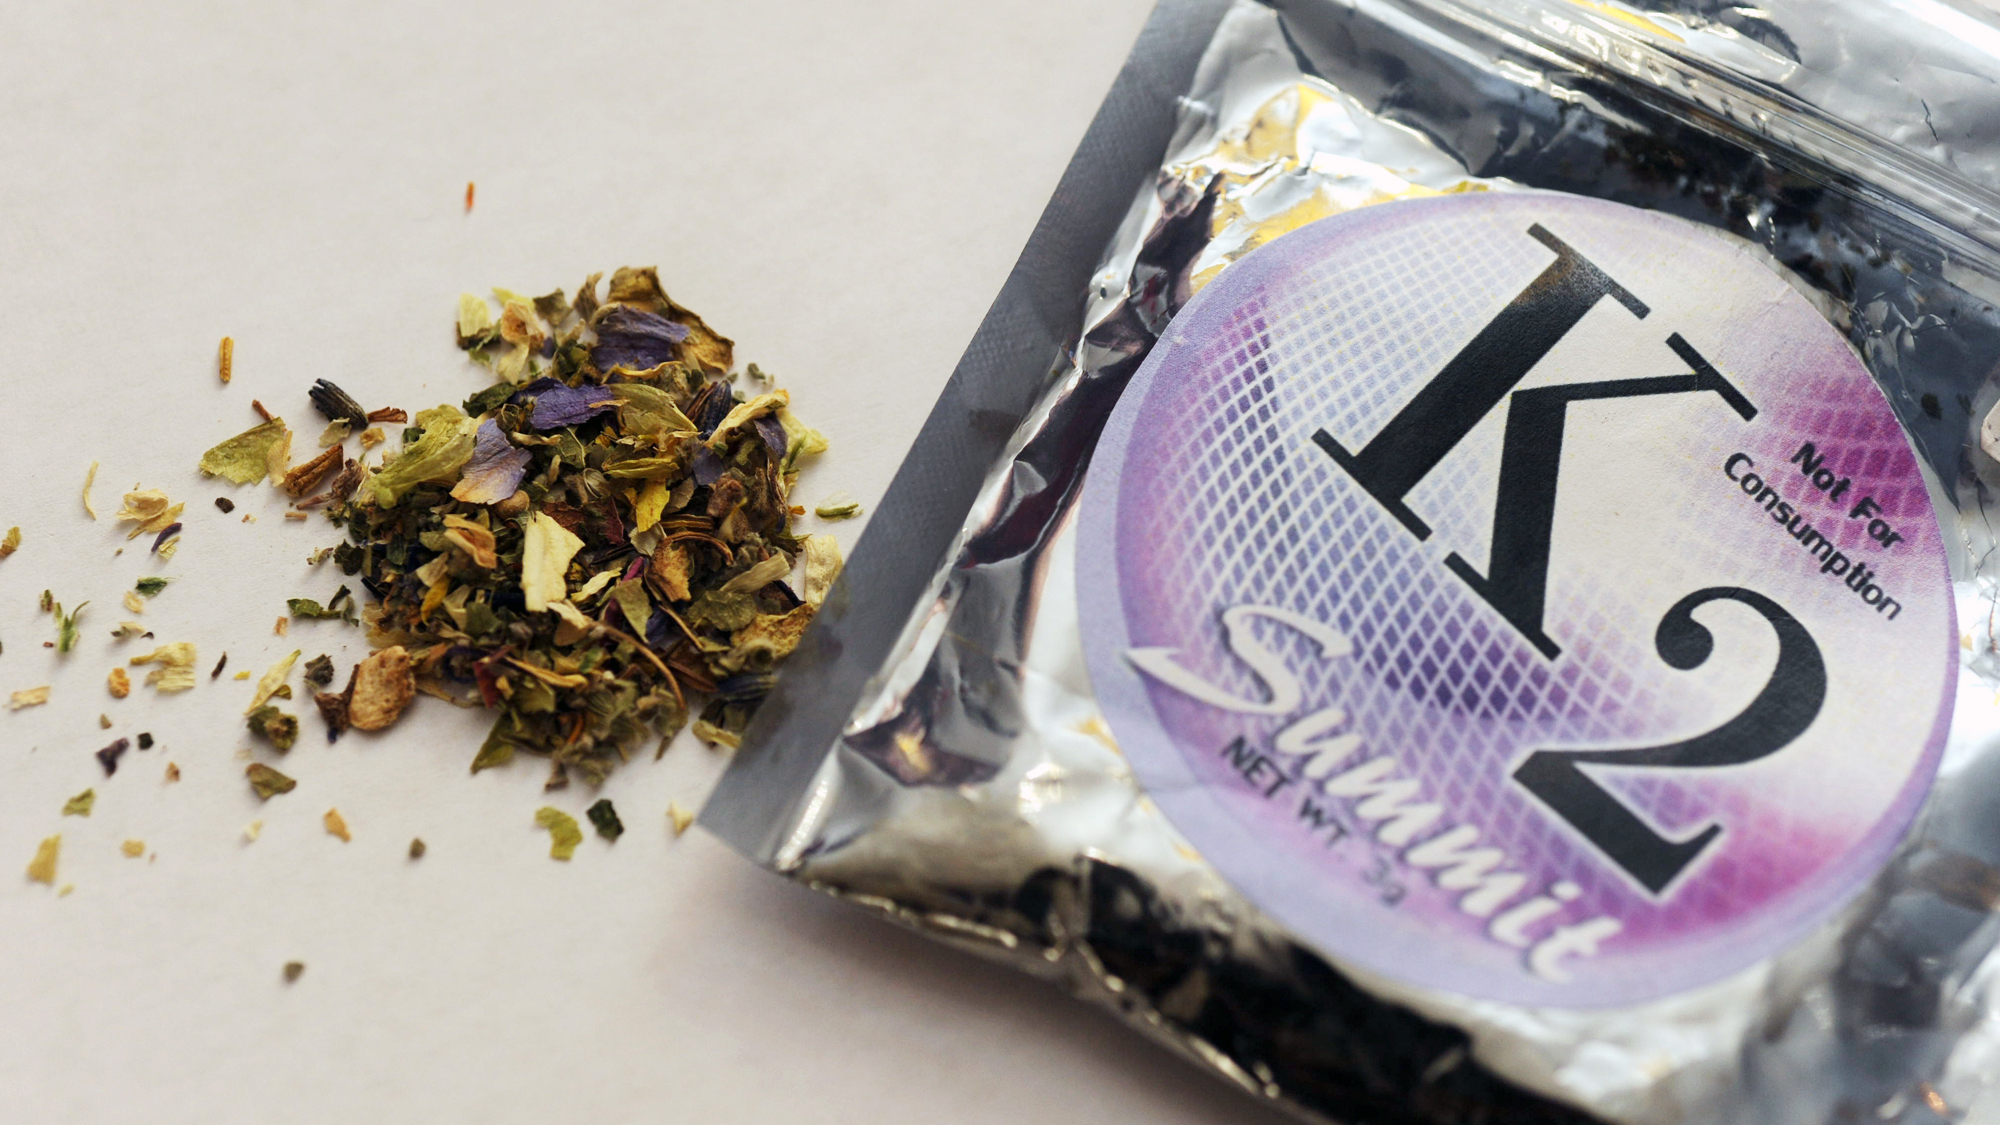 Chemical Change In Synthetic Marijuana Suspected Of Causing Illnesses